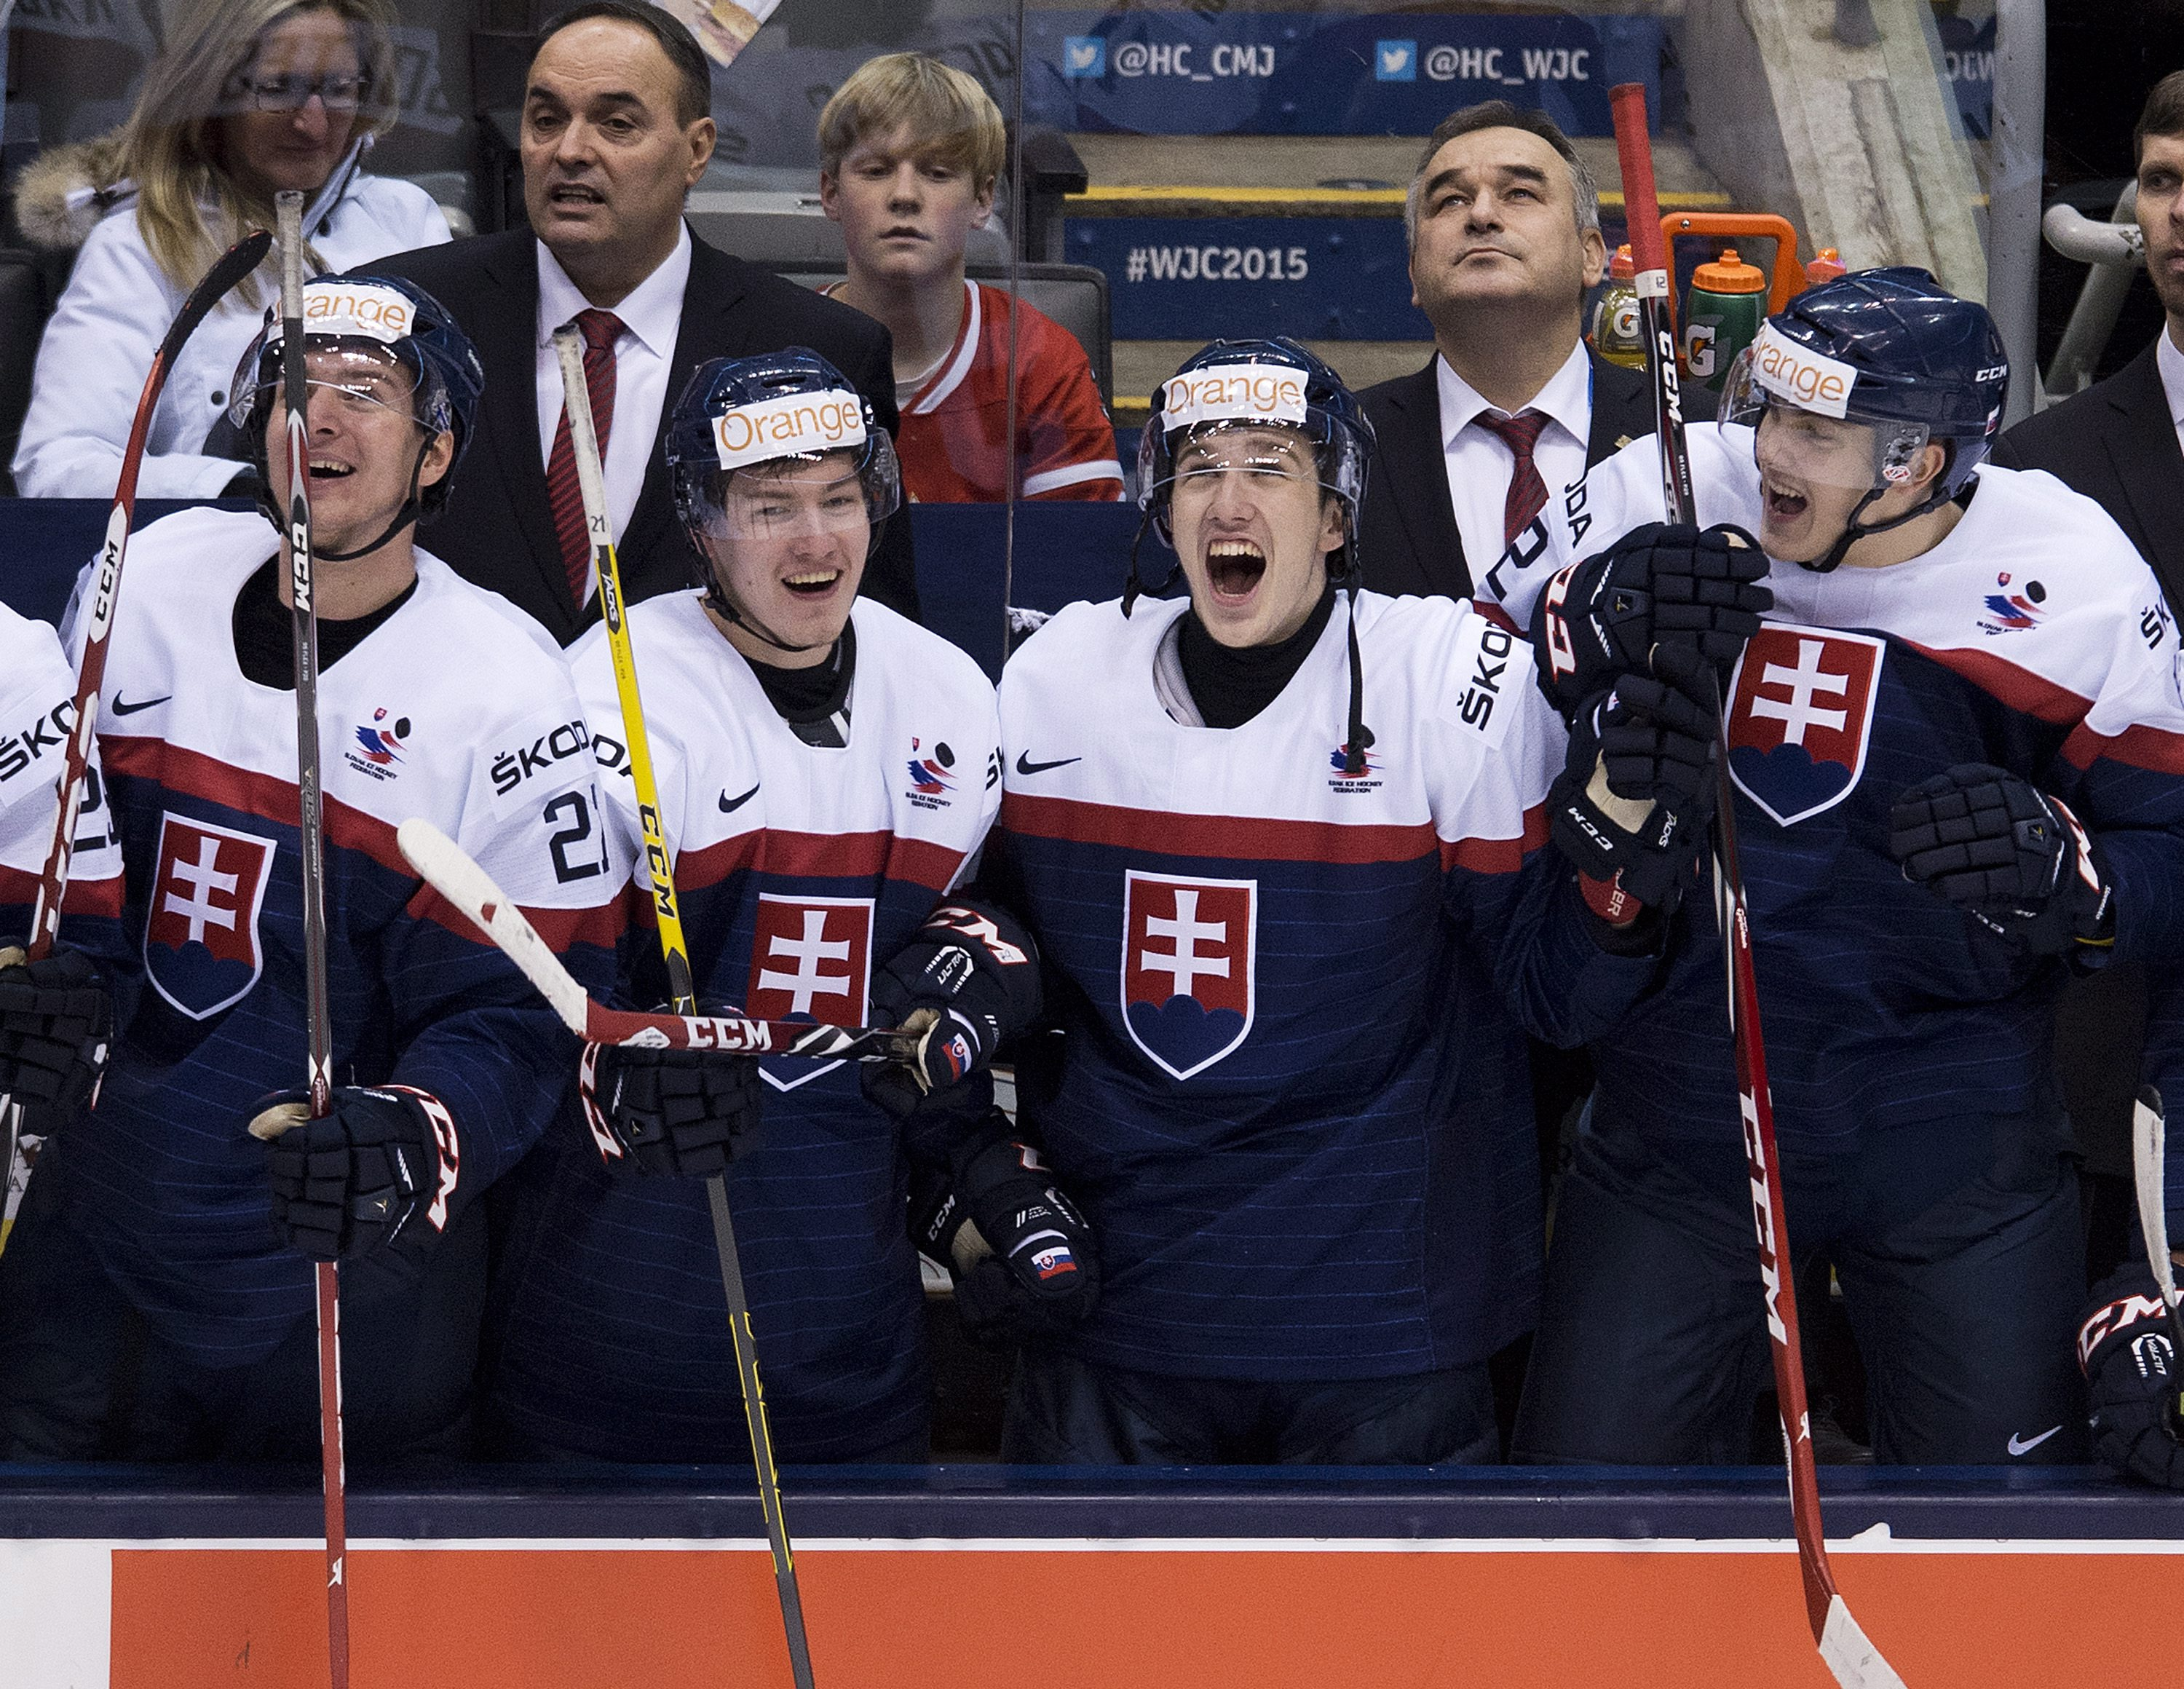 WJC: For Slovakia, First Bronze Medal In 16 Years Brings 'indescribable Feelings'